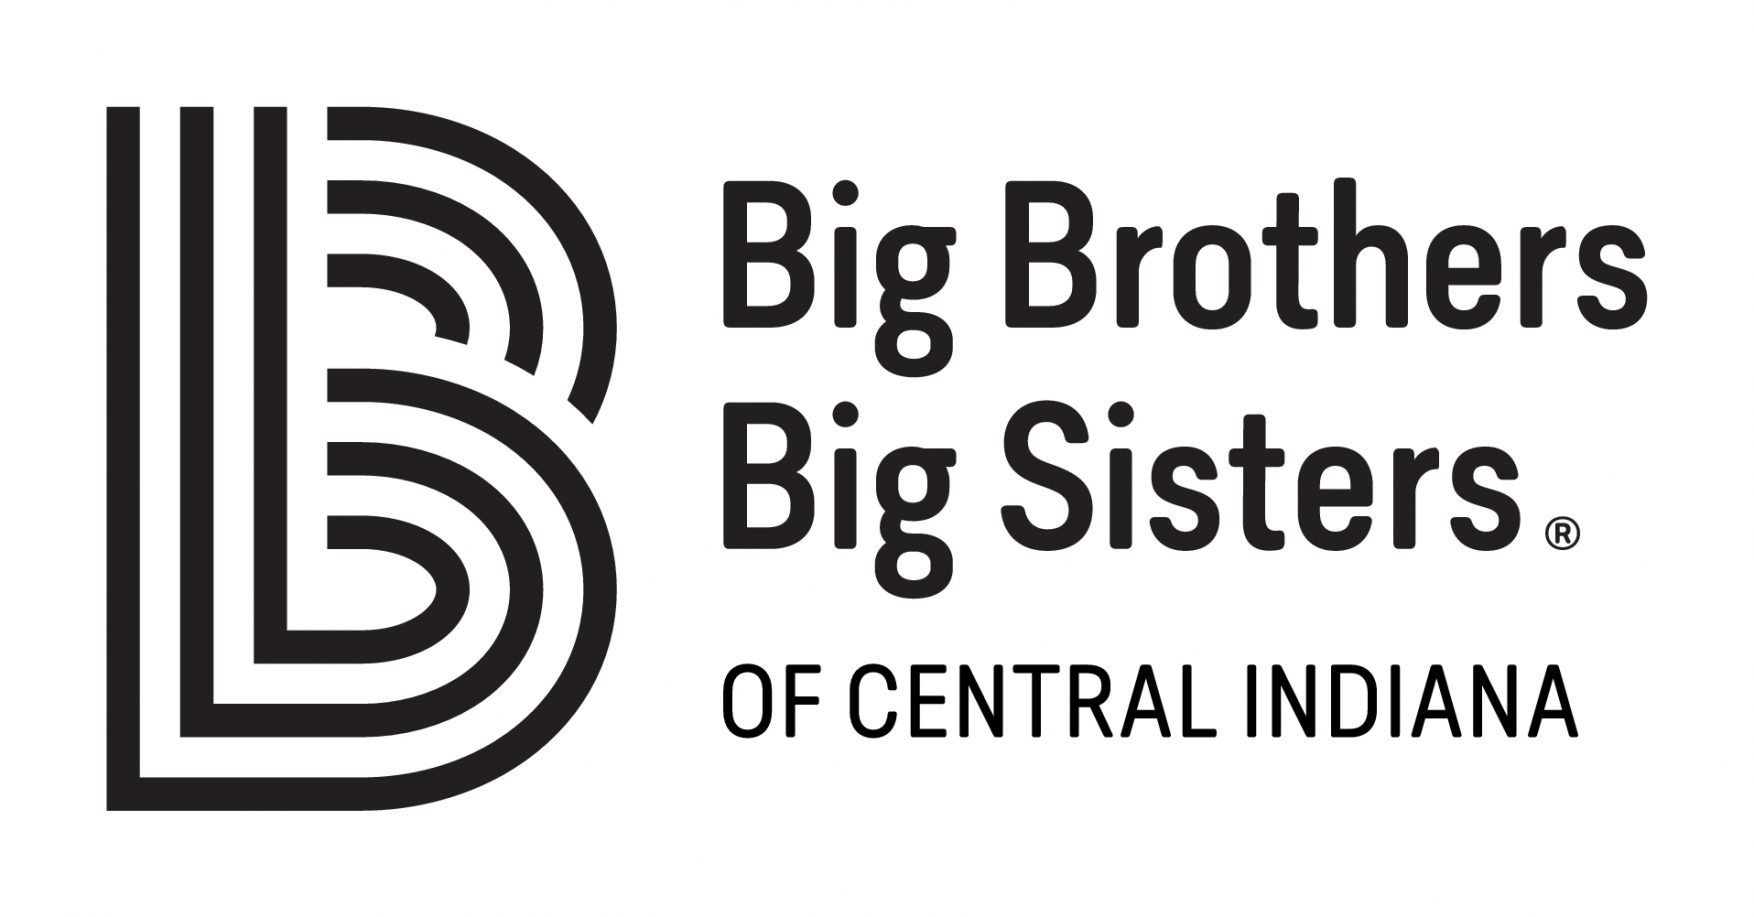 Big Brothers Big Sisters of Central Indiana – youth mentoring